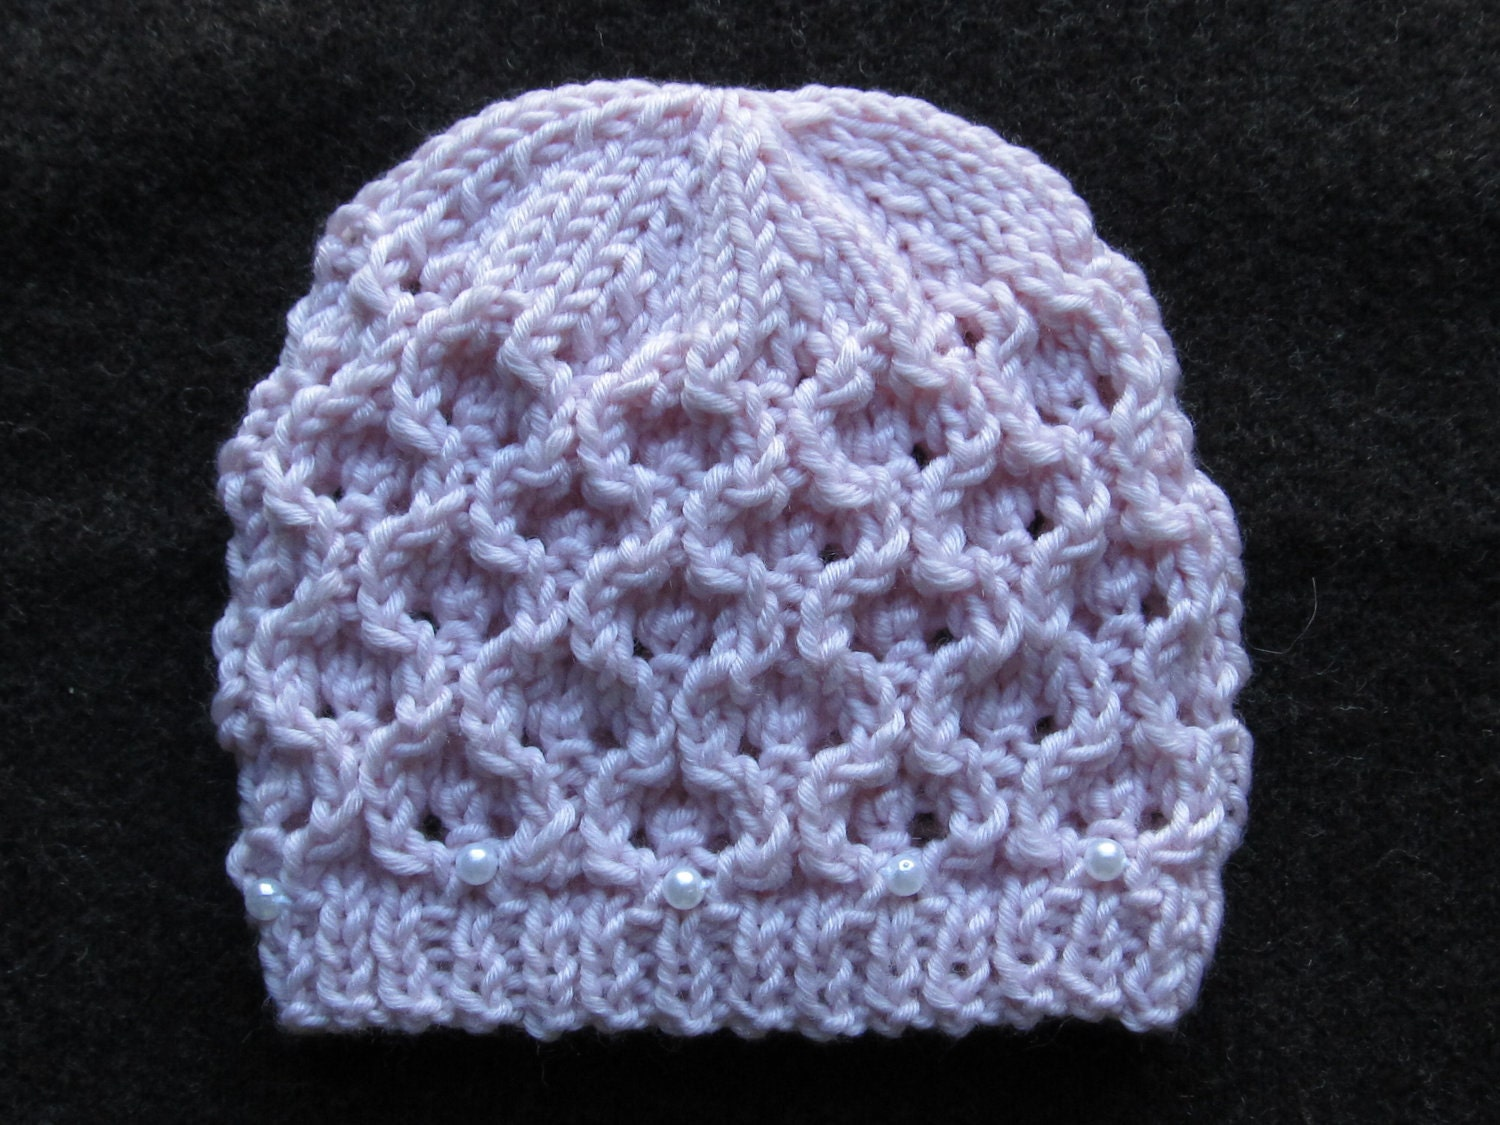 Number 51 Knitting Pattern Hourglass Eyelet Hat in Sizes 0-6 months, ...